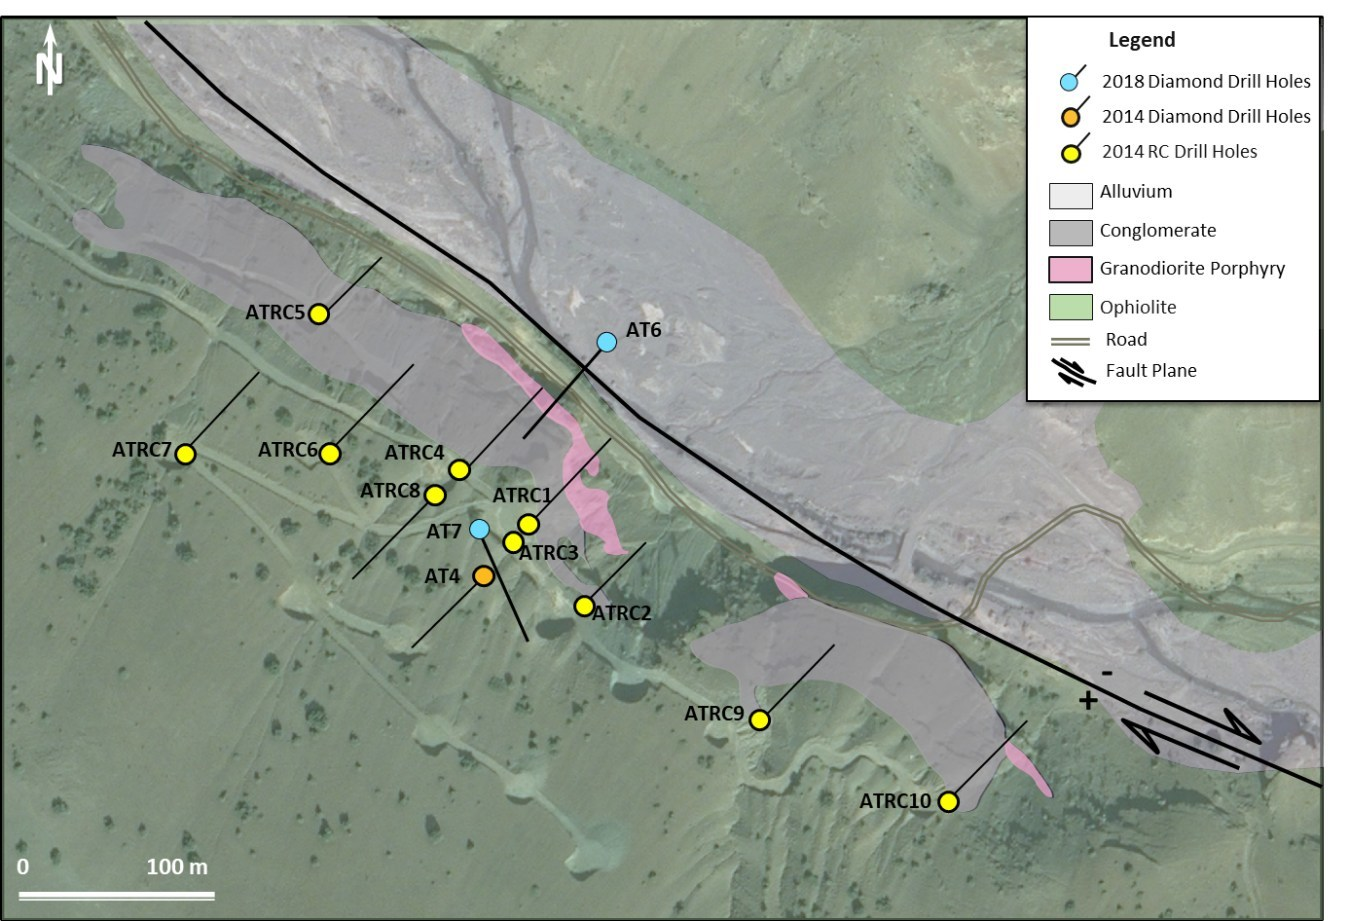 Figure 7. Geology map of Aslantepe prospect. (CNW Group/Alacer Gold Corp.)